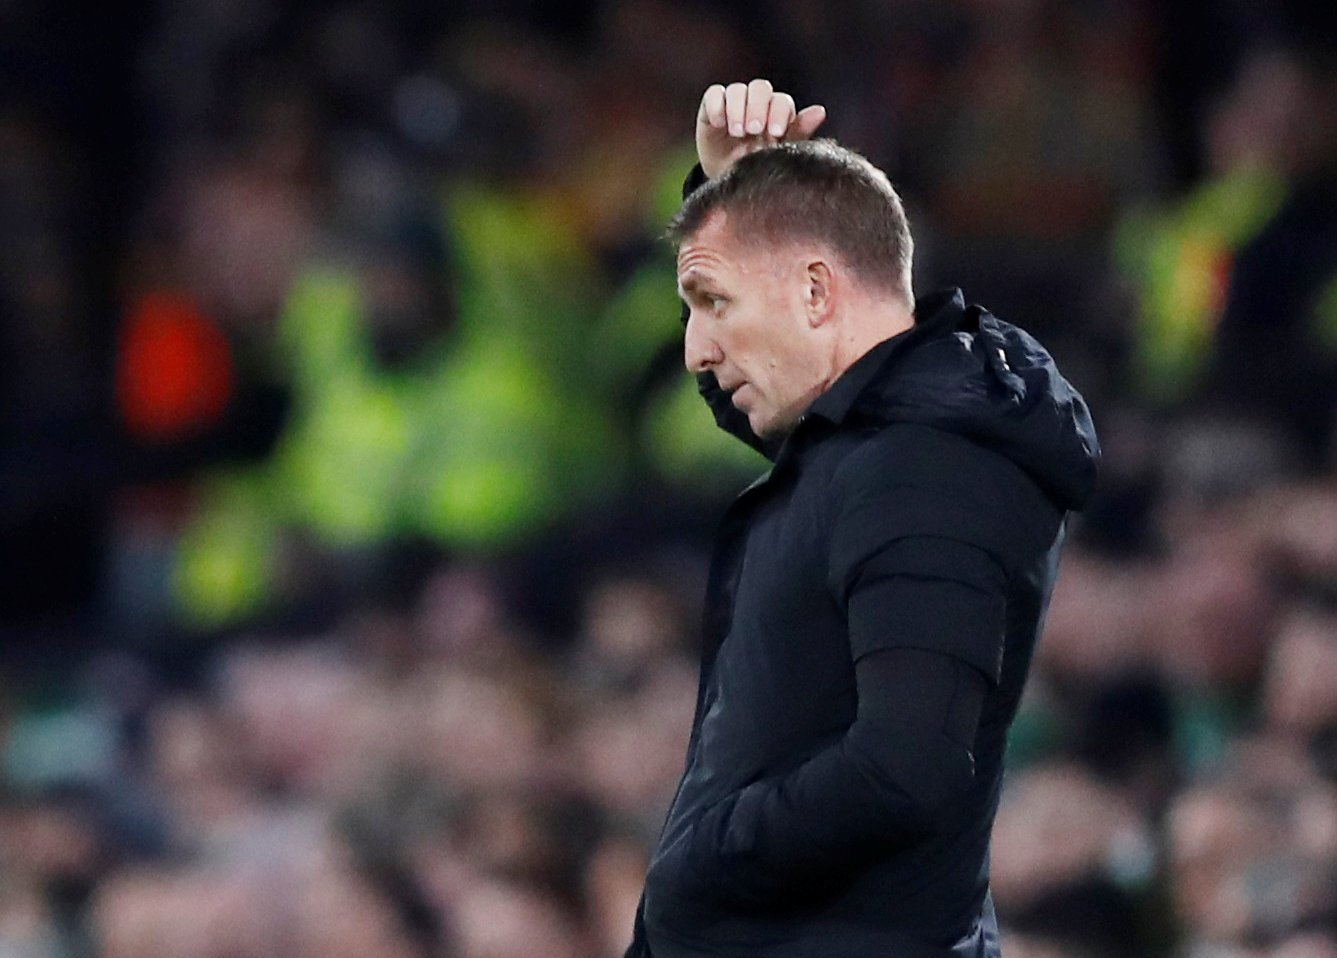 Leicester City: Rodgers tells players not to sulk